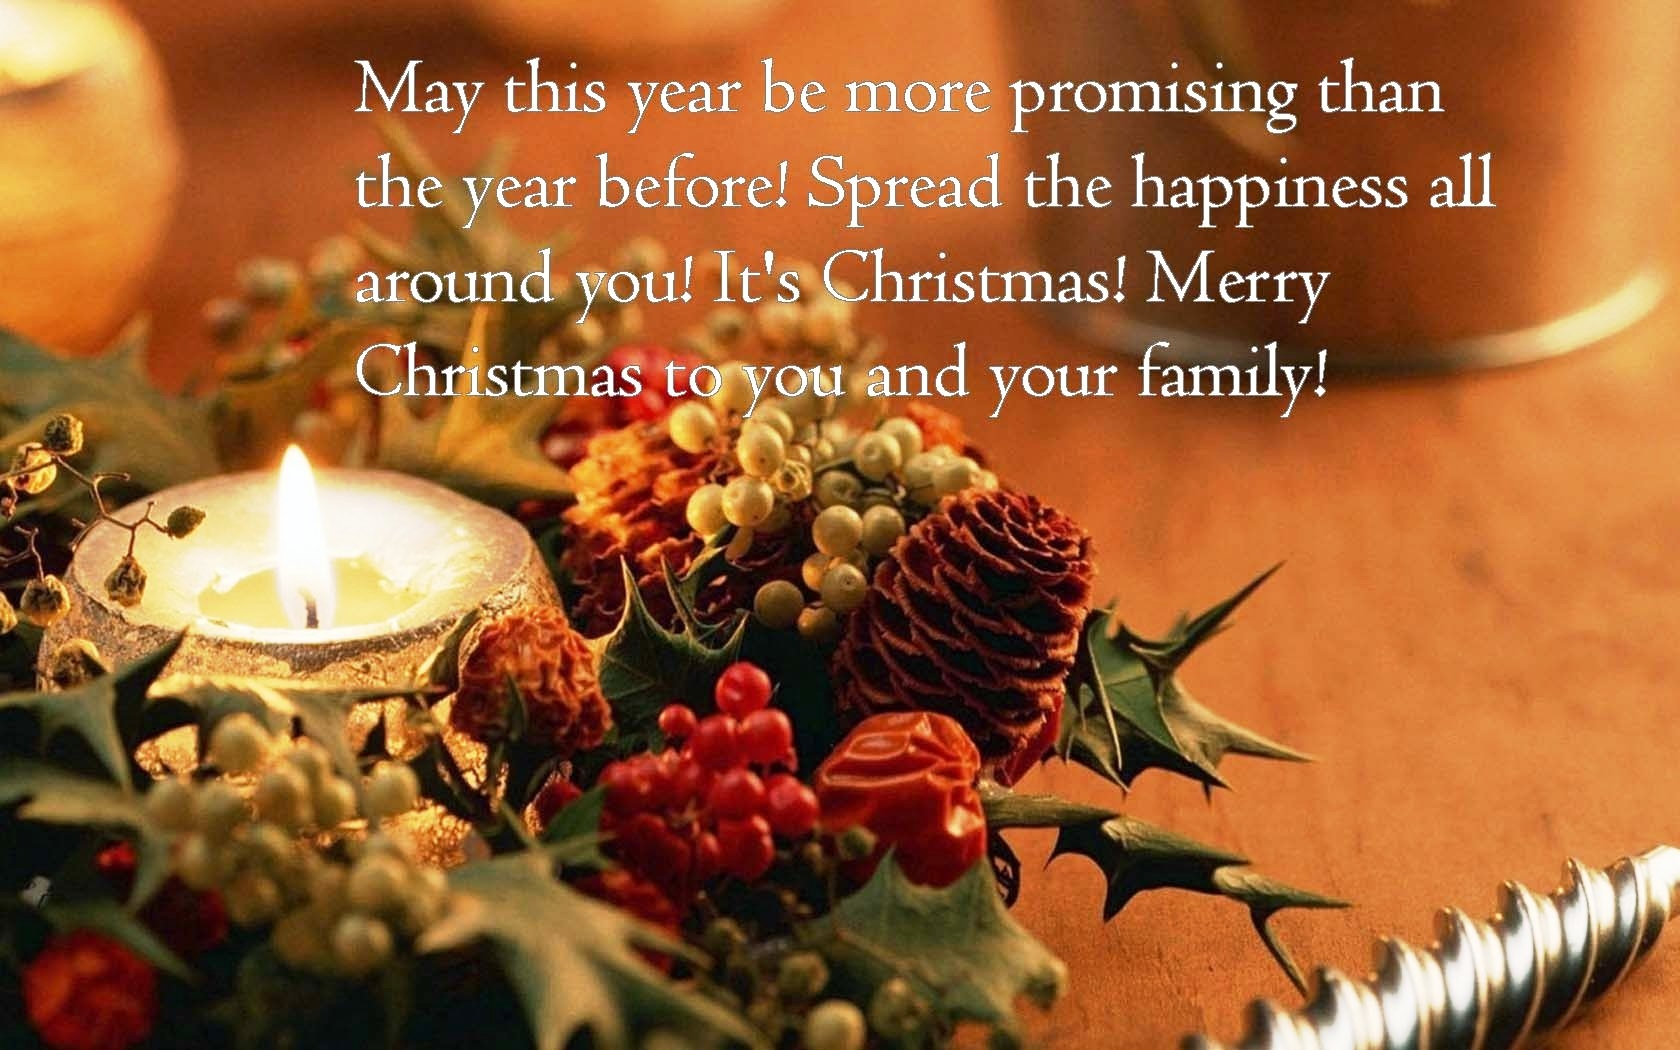 Quotes Xmas Wishes Merry Christmas To You And Your Family Pictures Photos And